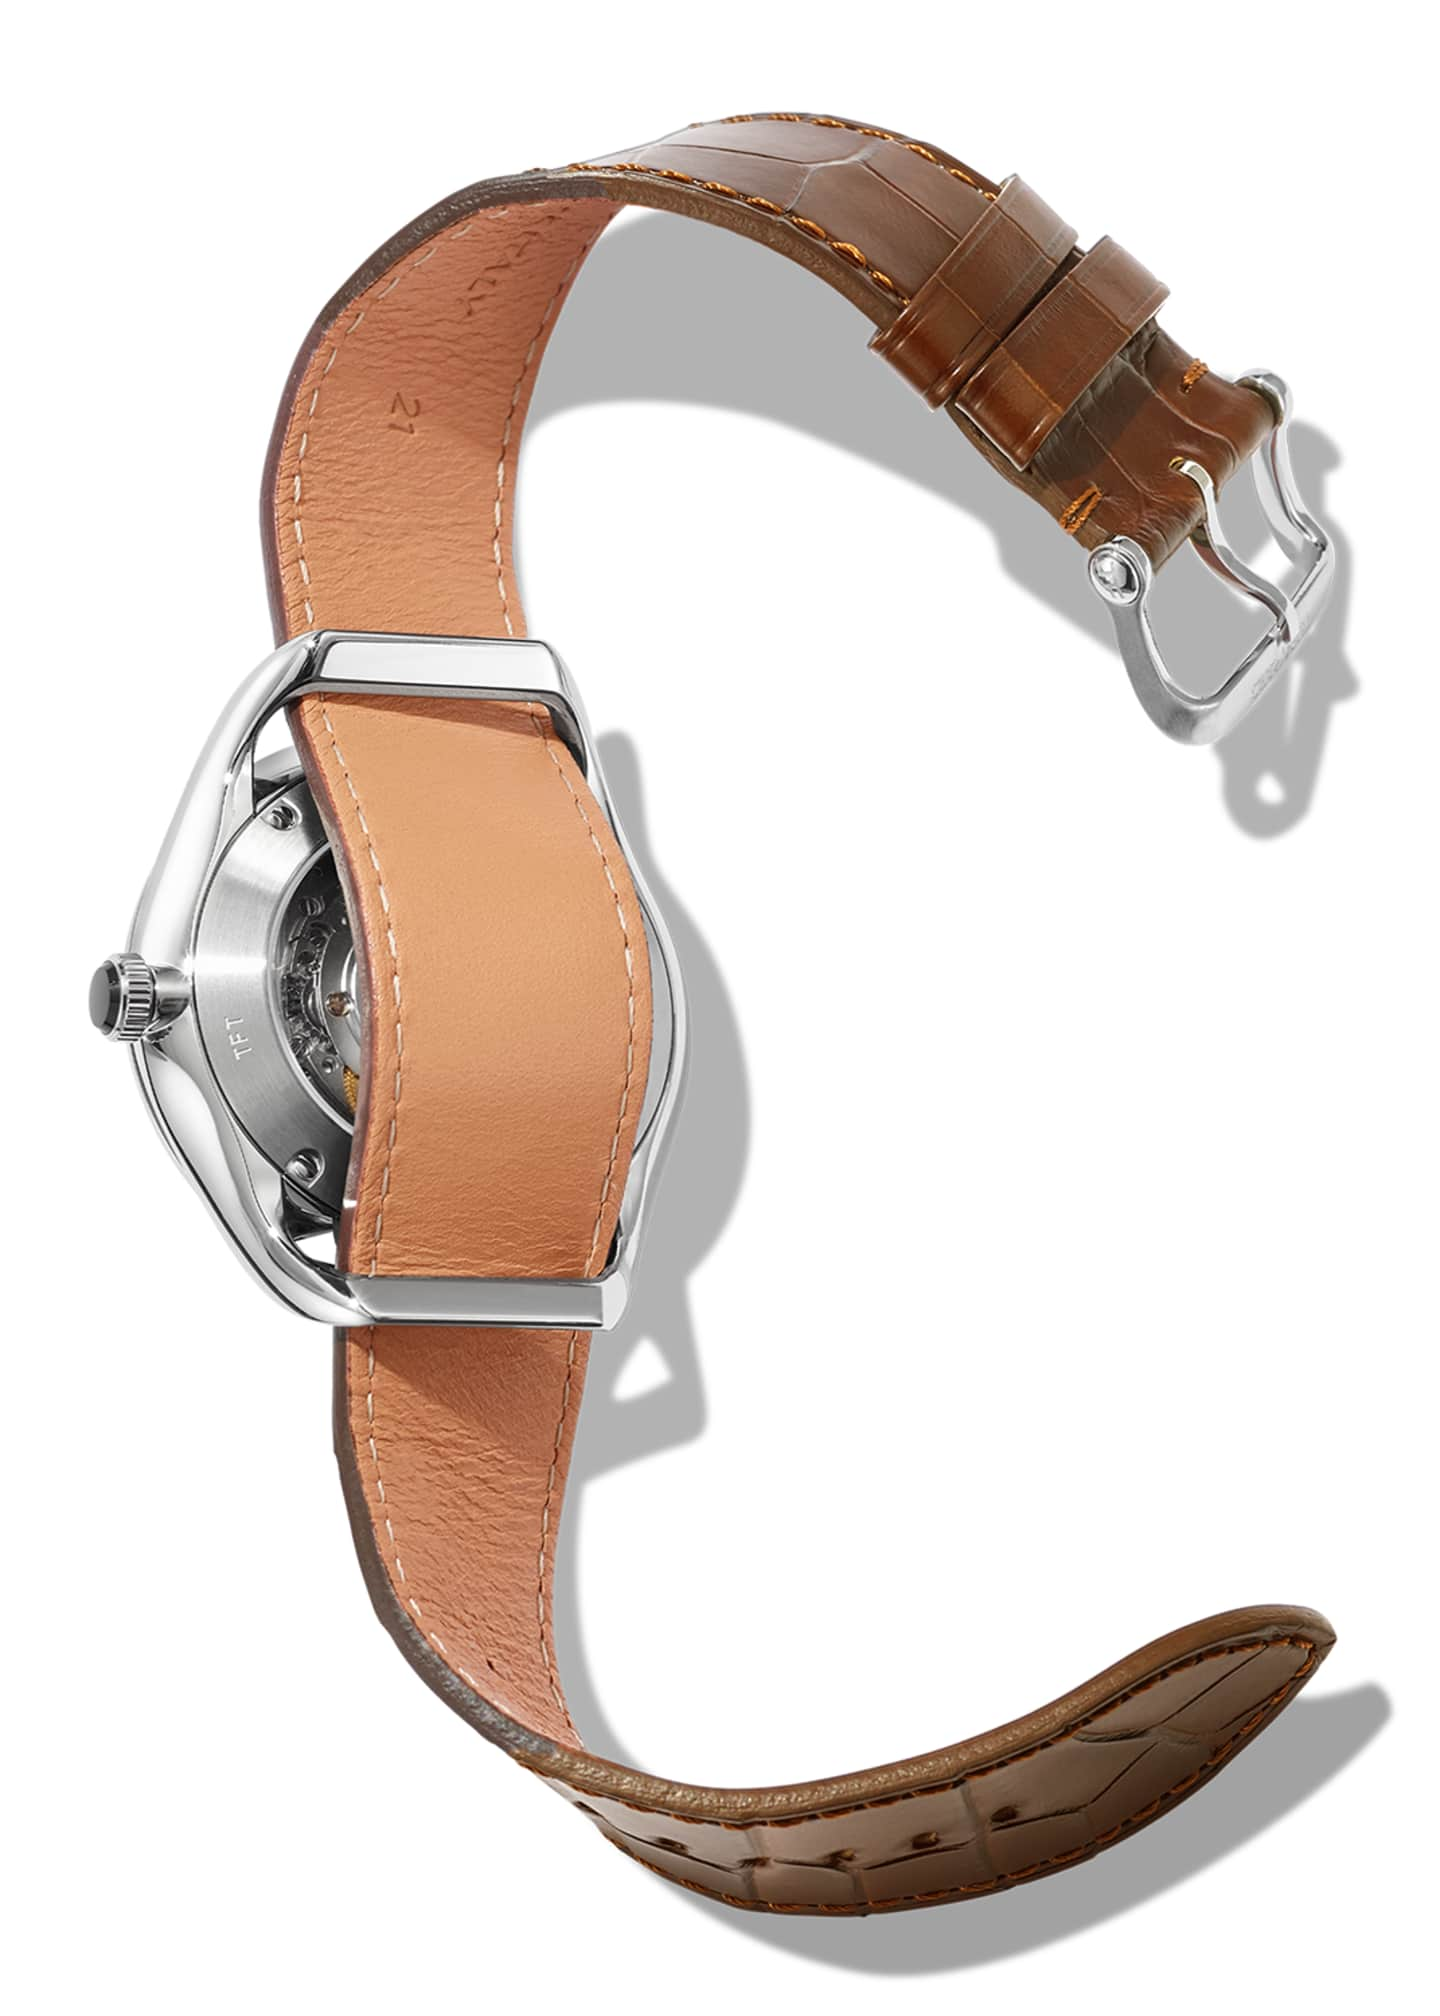 Image 3 of 3: N.002 40mm Round Alligator Leather Watch